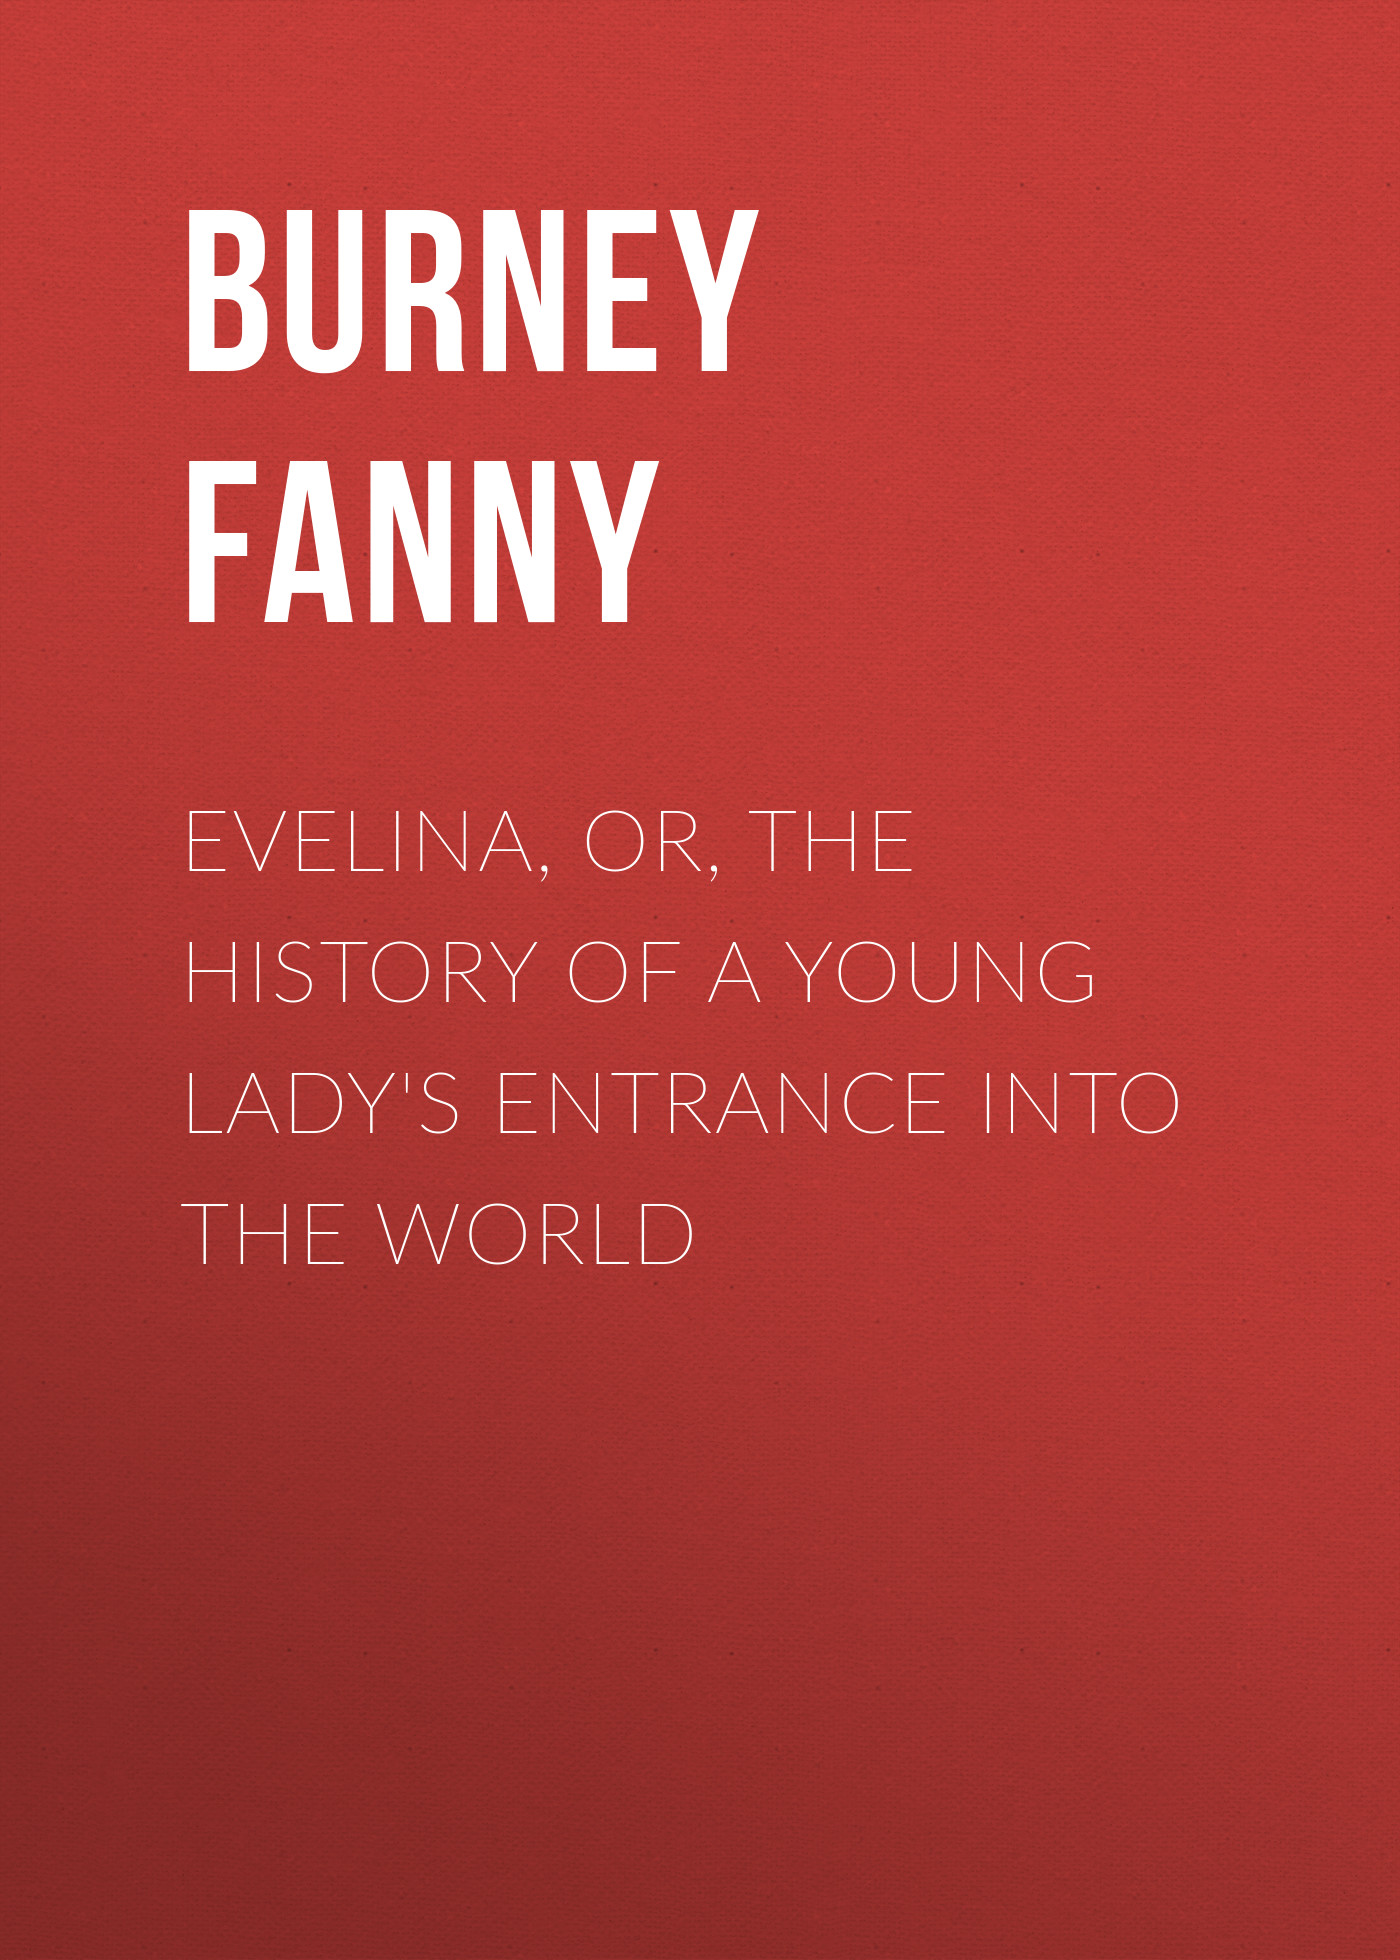 Burney Fanny Evelina, Or, the History of a Young Lady's Entrance into the World